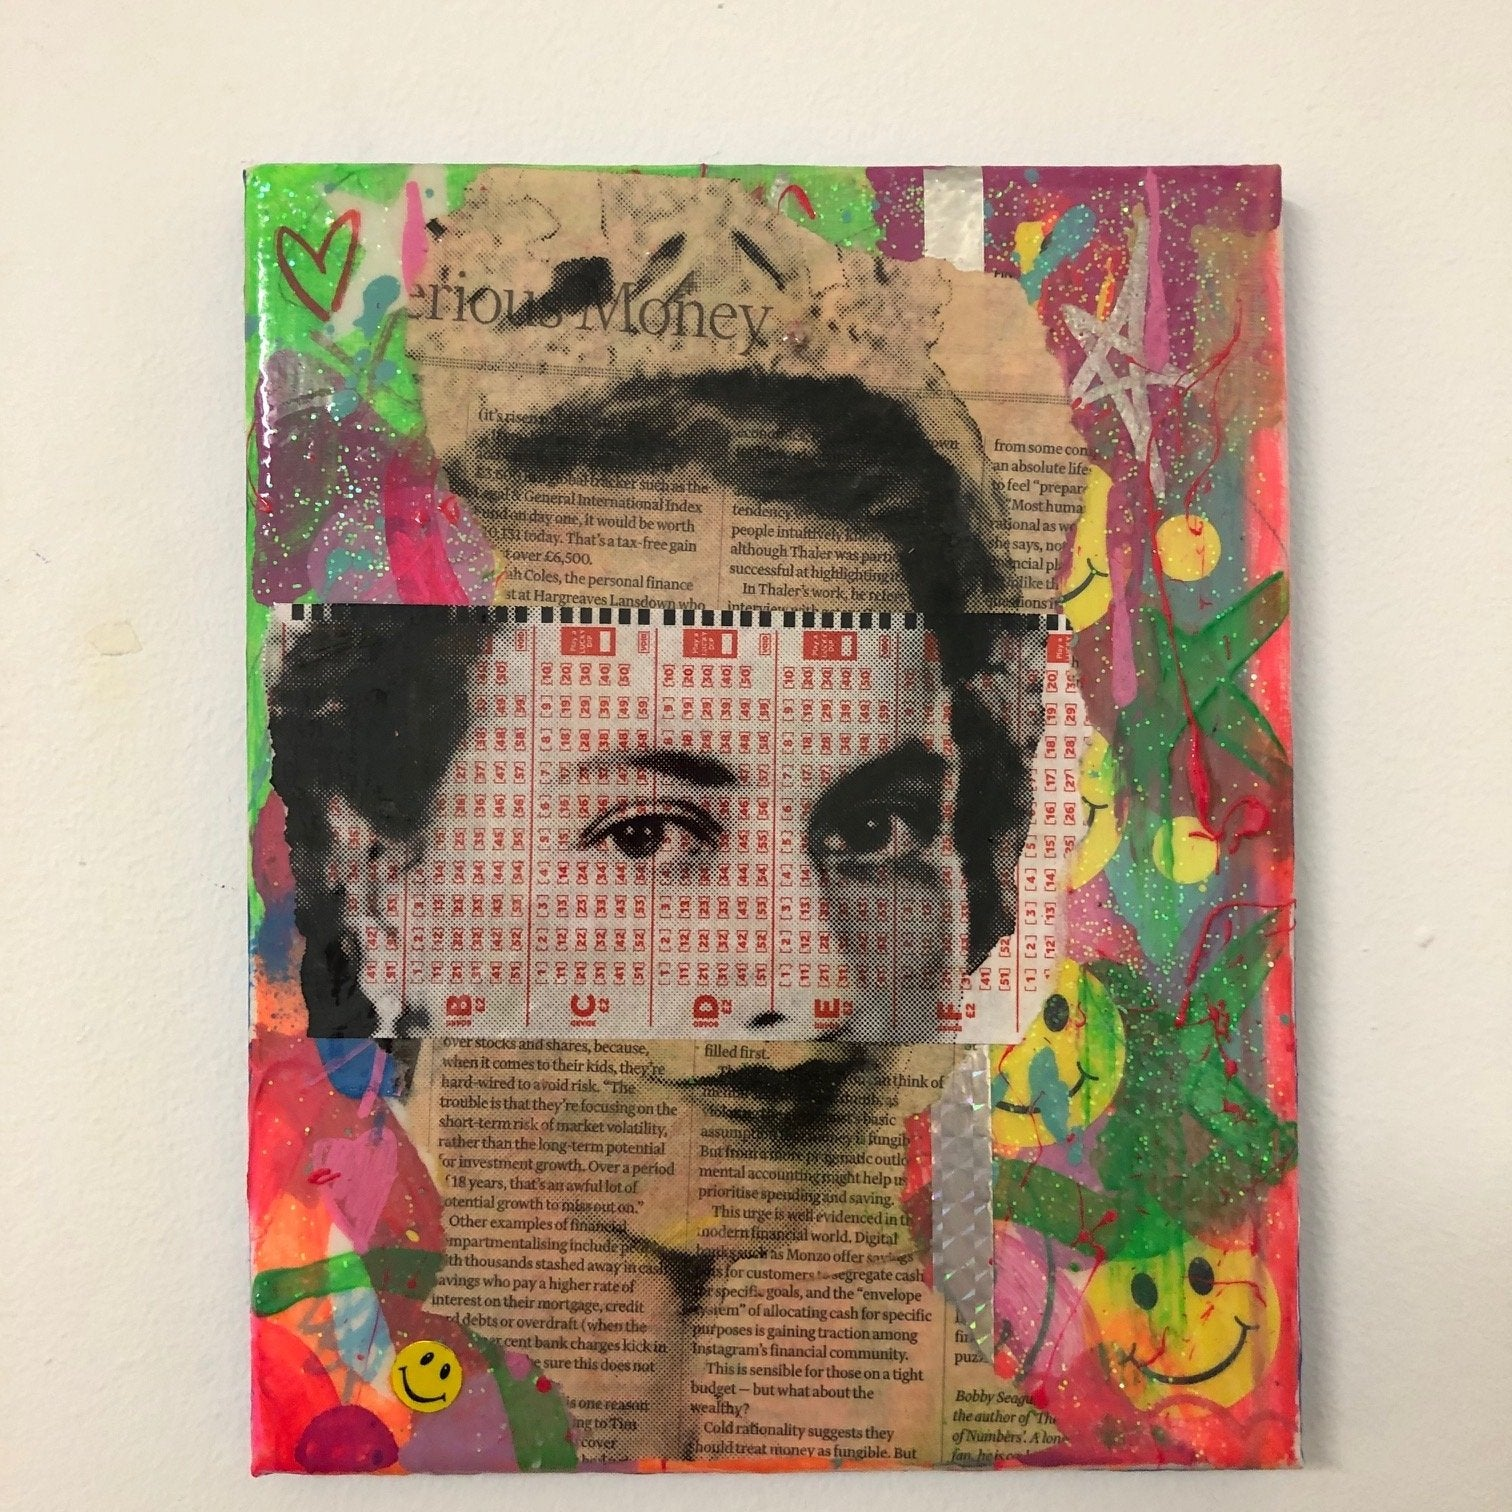 Dada queen by Barrie J Davies 2020, Mixed media on canvas, unframed 20cm x 25cm. Barrie J Davies is an Artist - Pop Art and Street art inspired Artist based in Brighton England UK - Pop Art Paintings, Street Art Prints & Editions available.